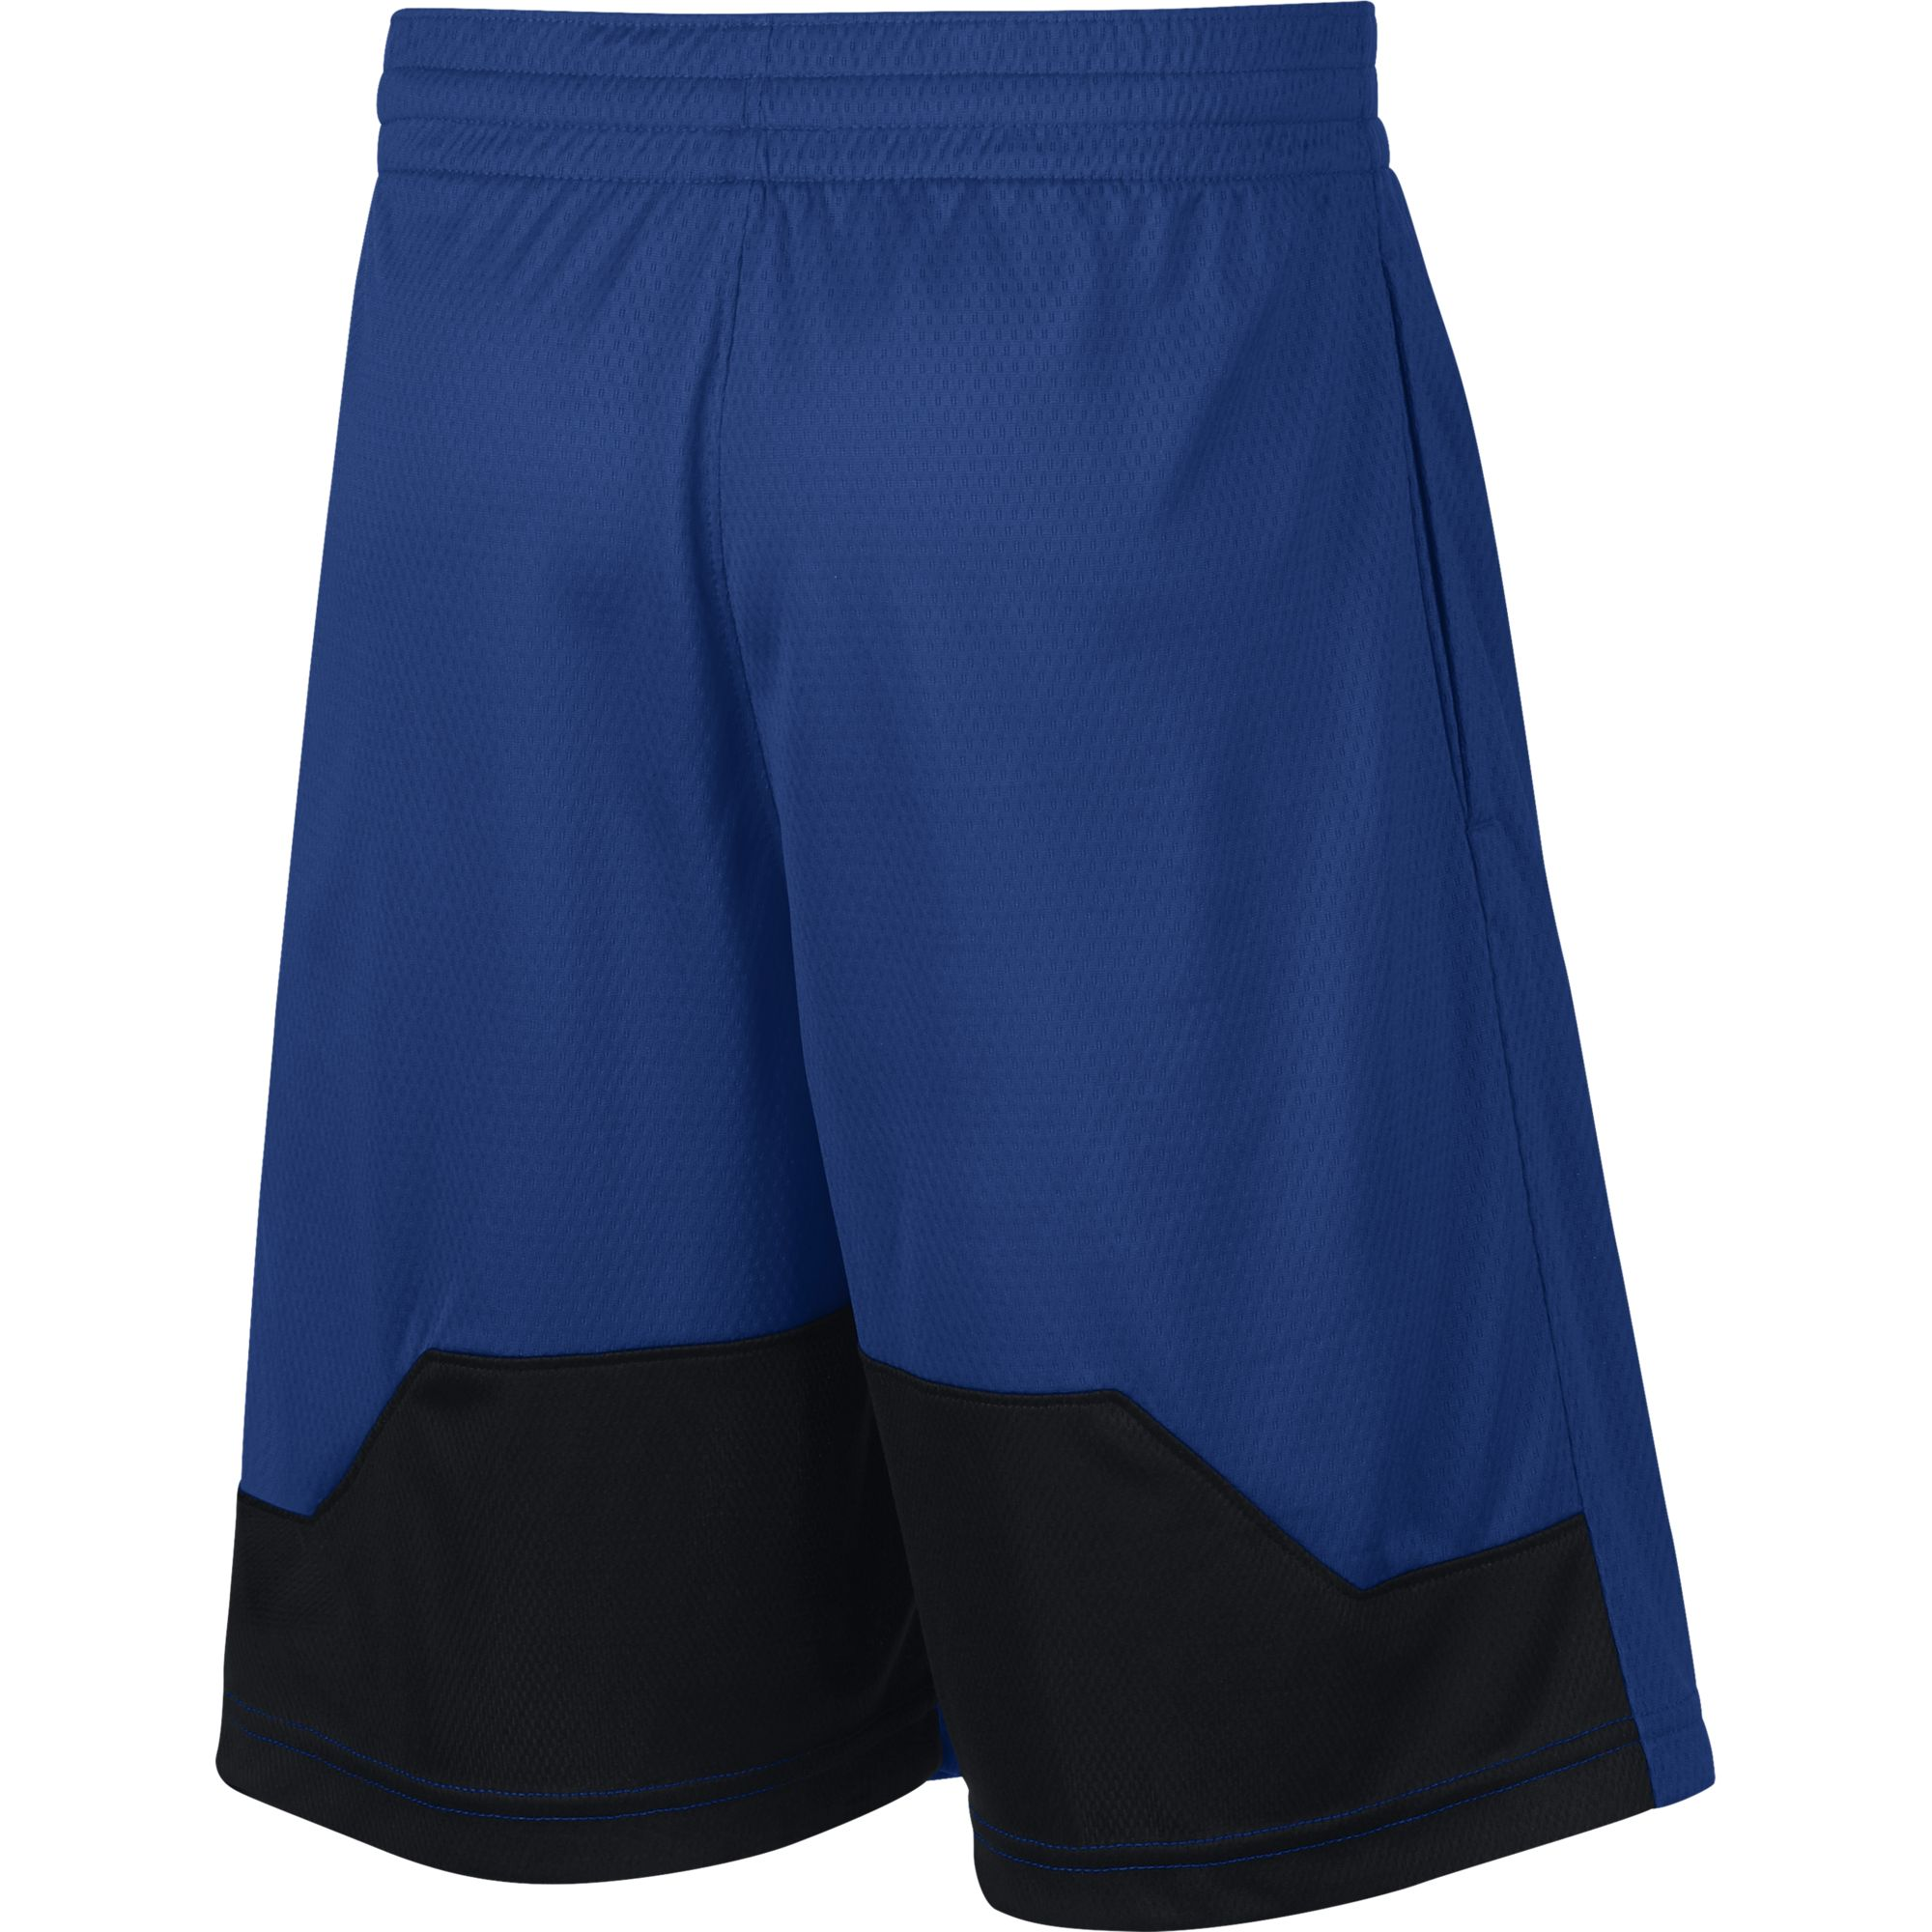 Nike Kids Dry Fit Basketball Shorts - Indigo Force/Black/White